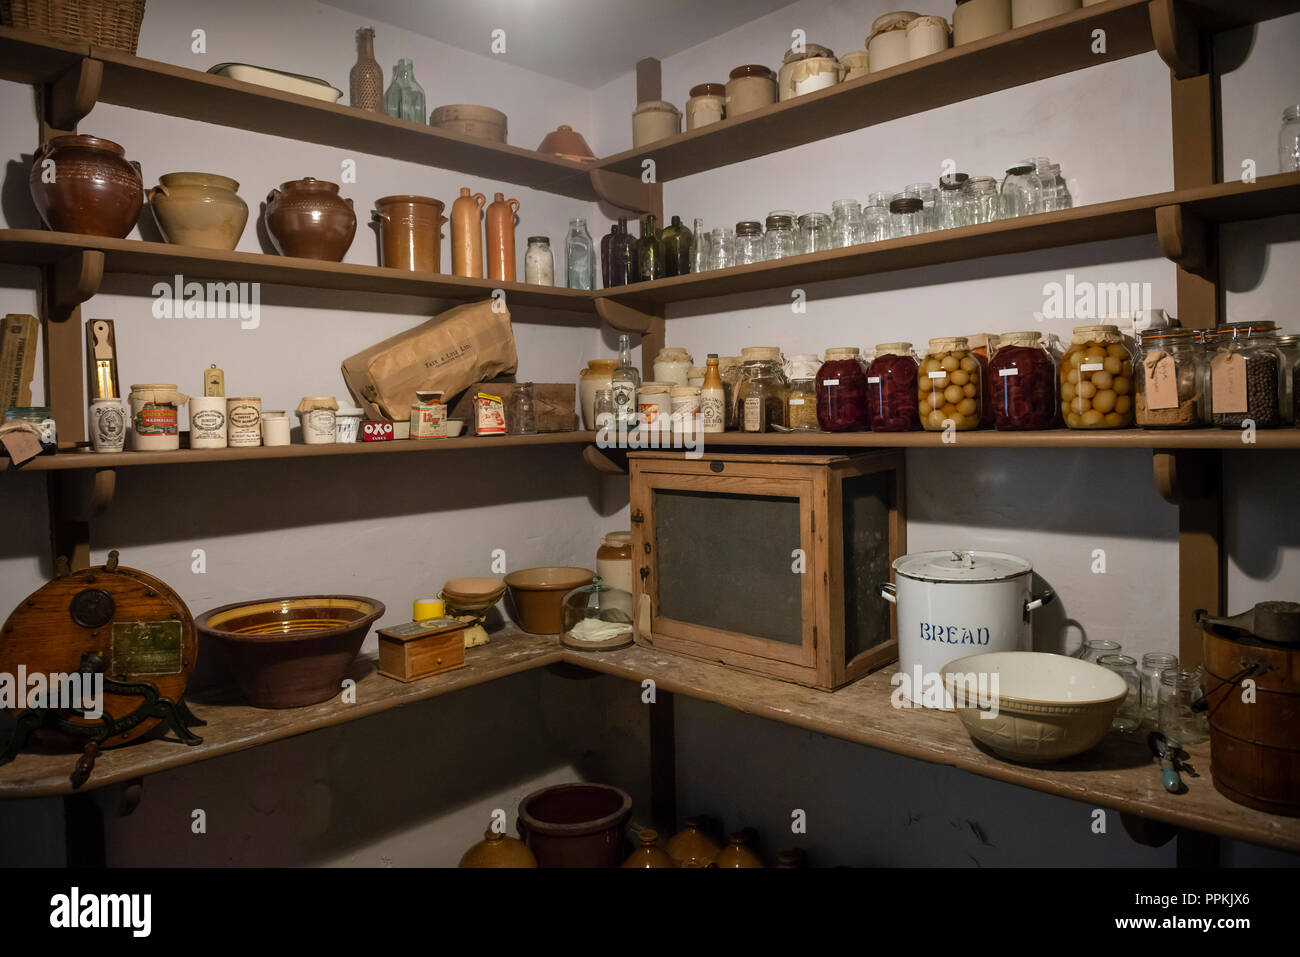 Edwardian era larder in a large house - Stock Image